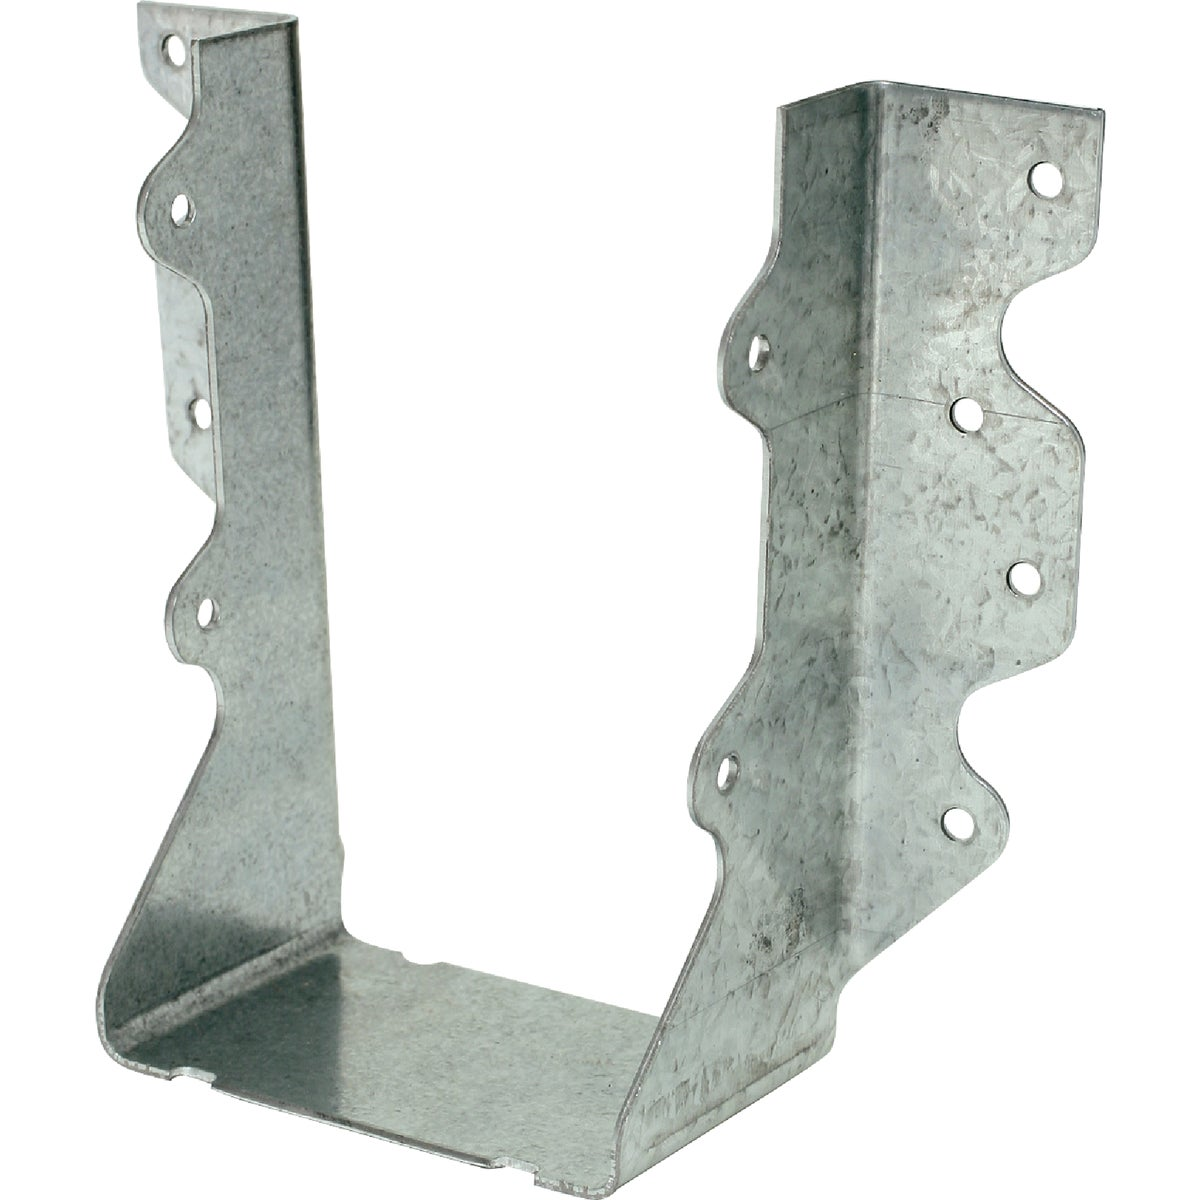 2X6 DOUBLE JOIST HANGER - U26-2 by Simpson Strong Tie